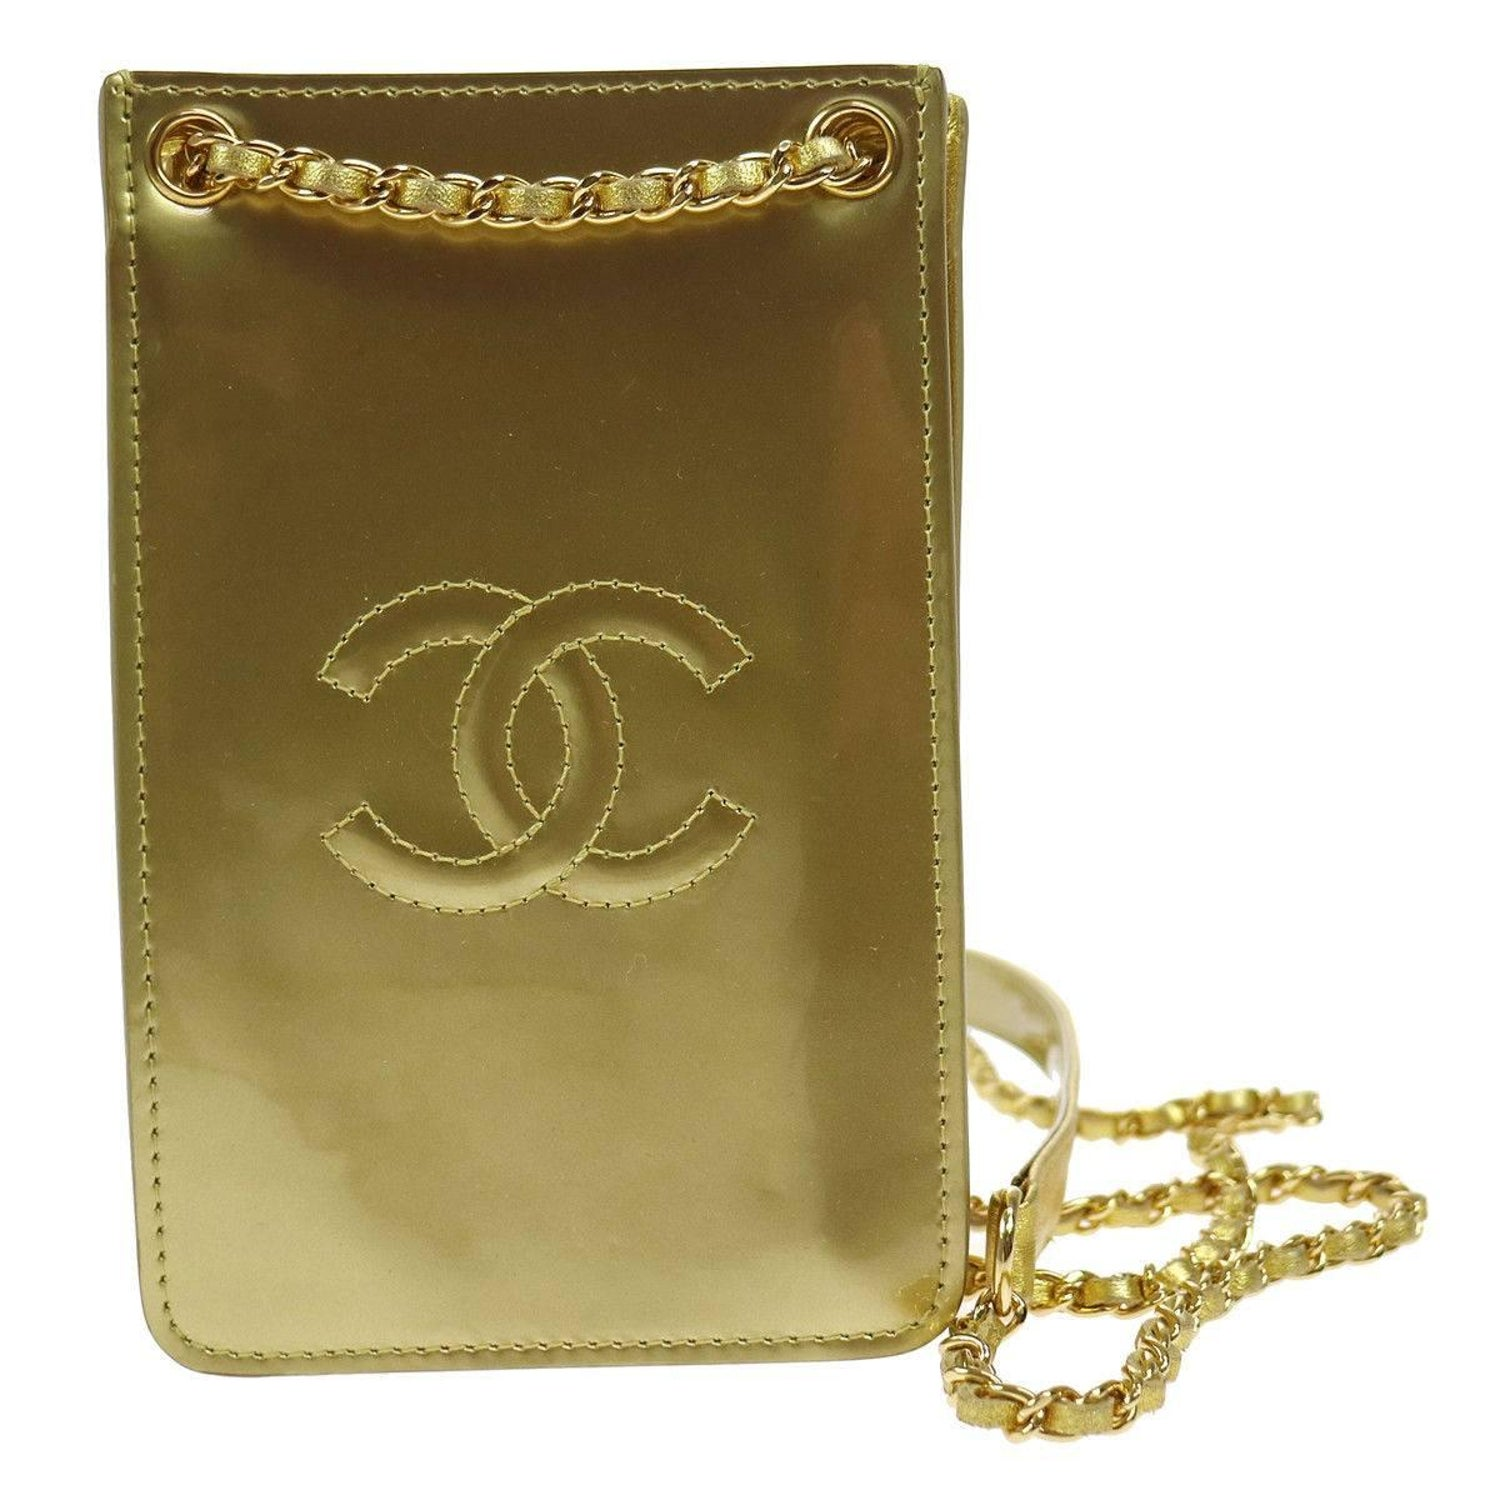 d6eaba7000e7 Chanel Patent Gold Cell Phone Case Mobile Crossbody Shoulder Bag in Box For  Sale at 1stdibs